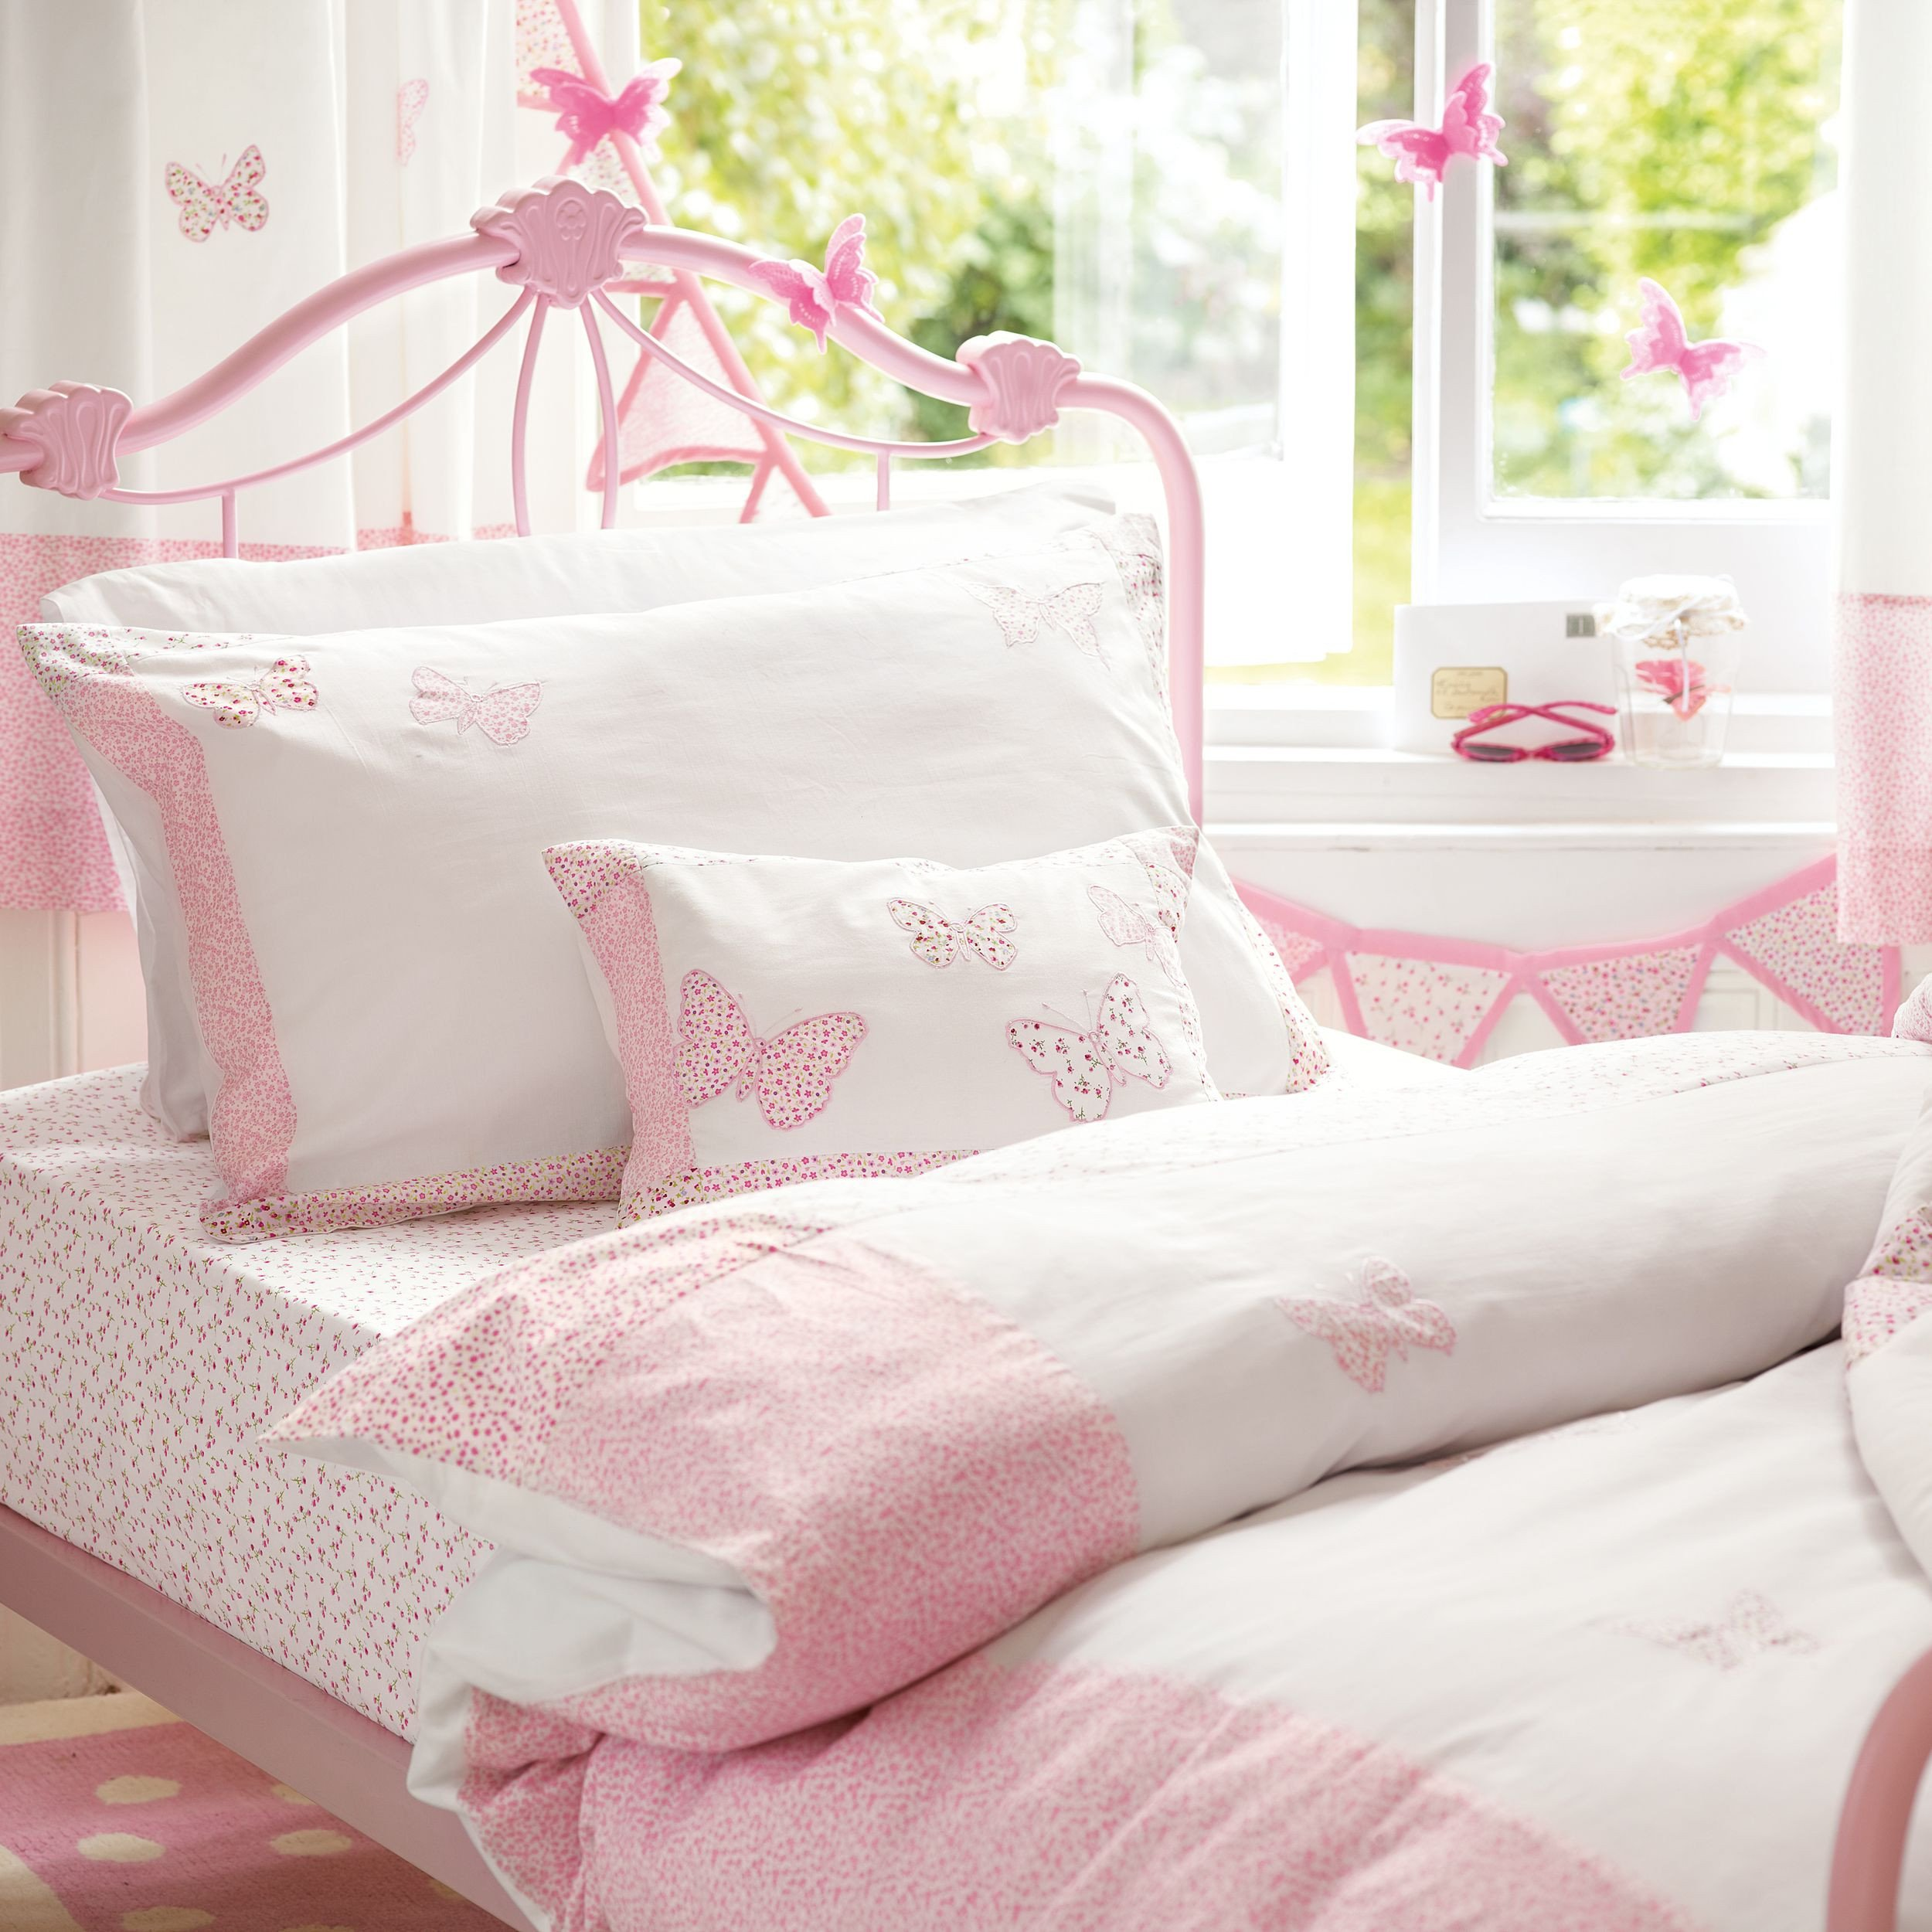 Bedroom Bedding and Curtain Set Luxury Bella butterfly Pink Cotton Duvet Set Laura ashley